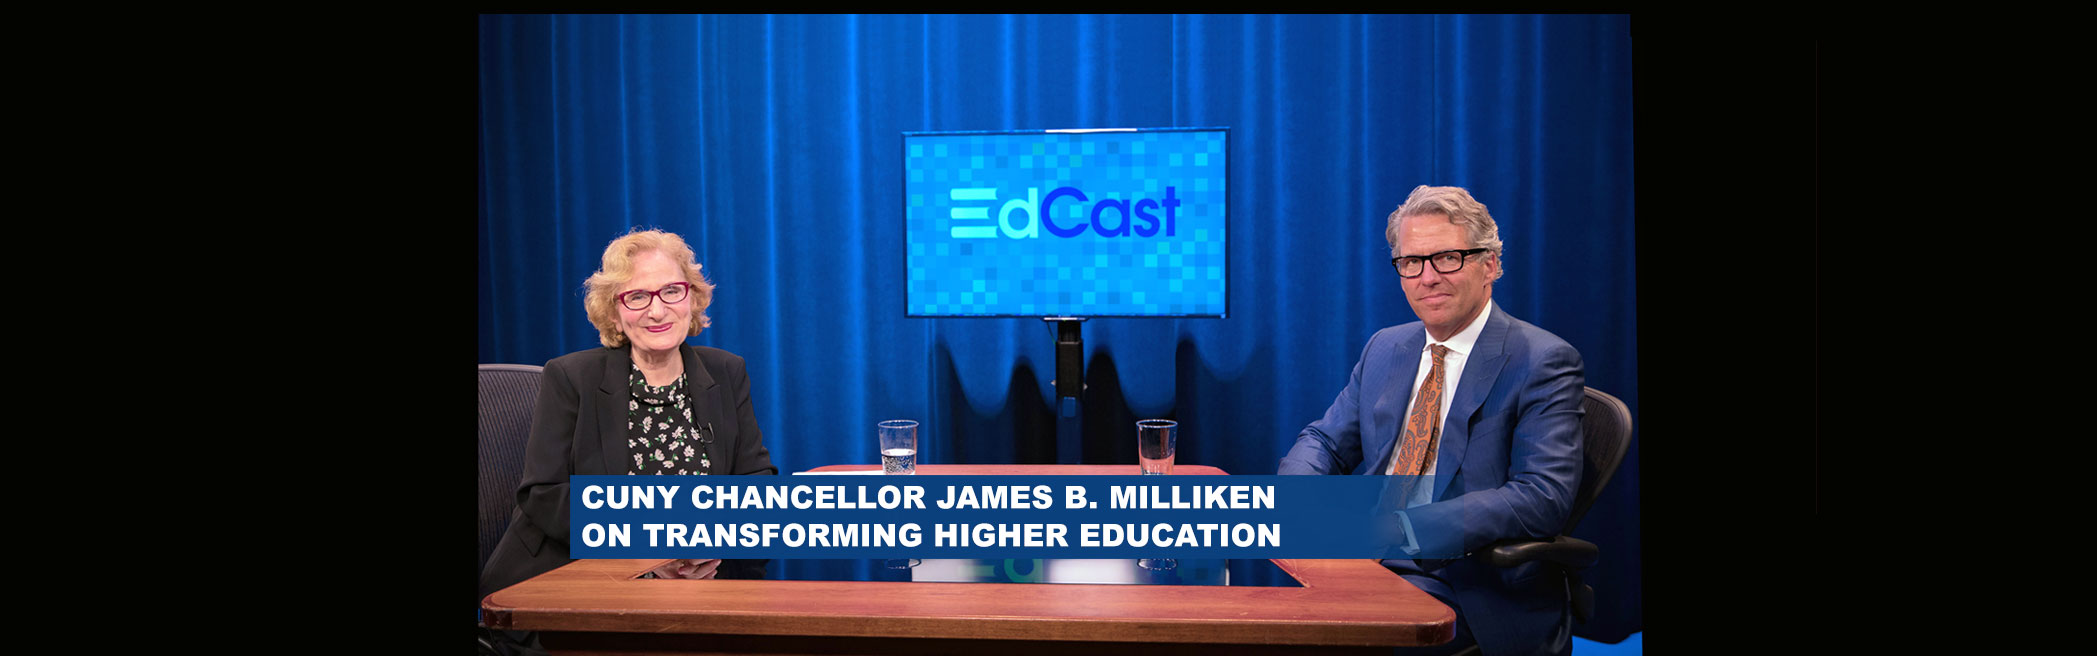 EdCast 125: CUNY Chancellor James B. Milliken on Transforming Higher Education